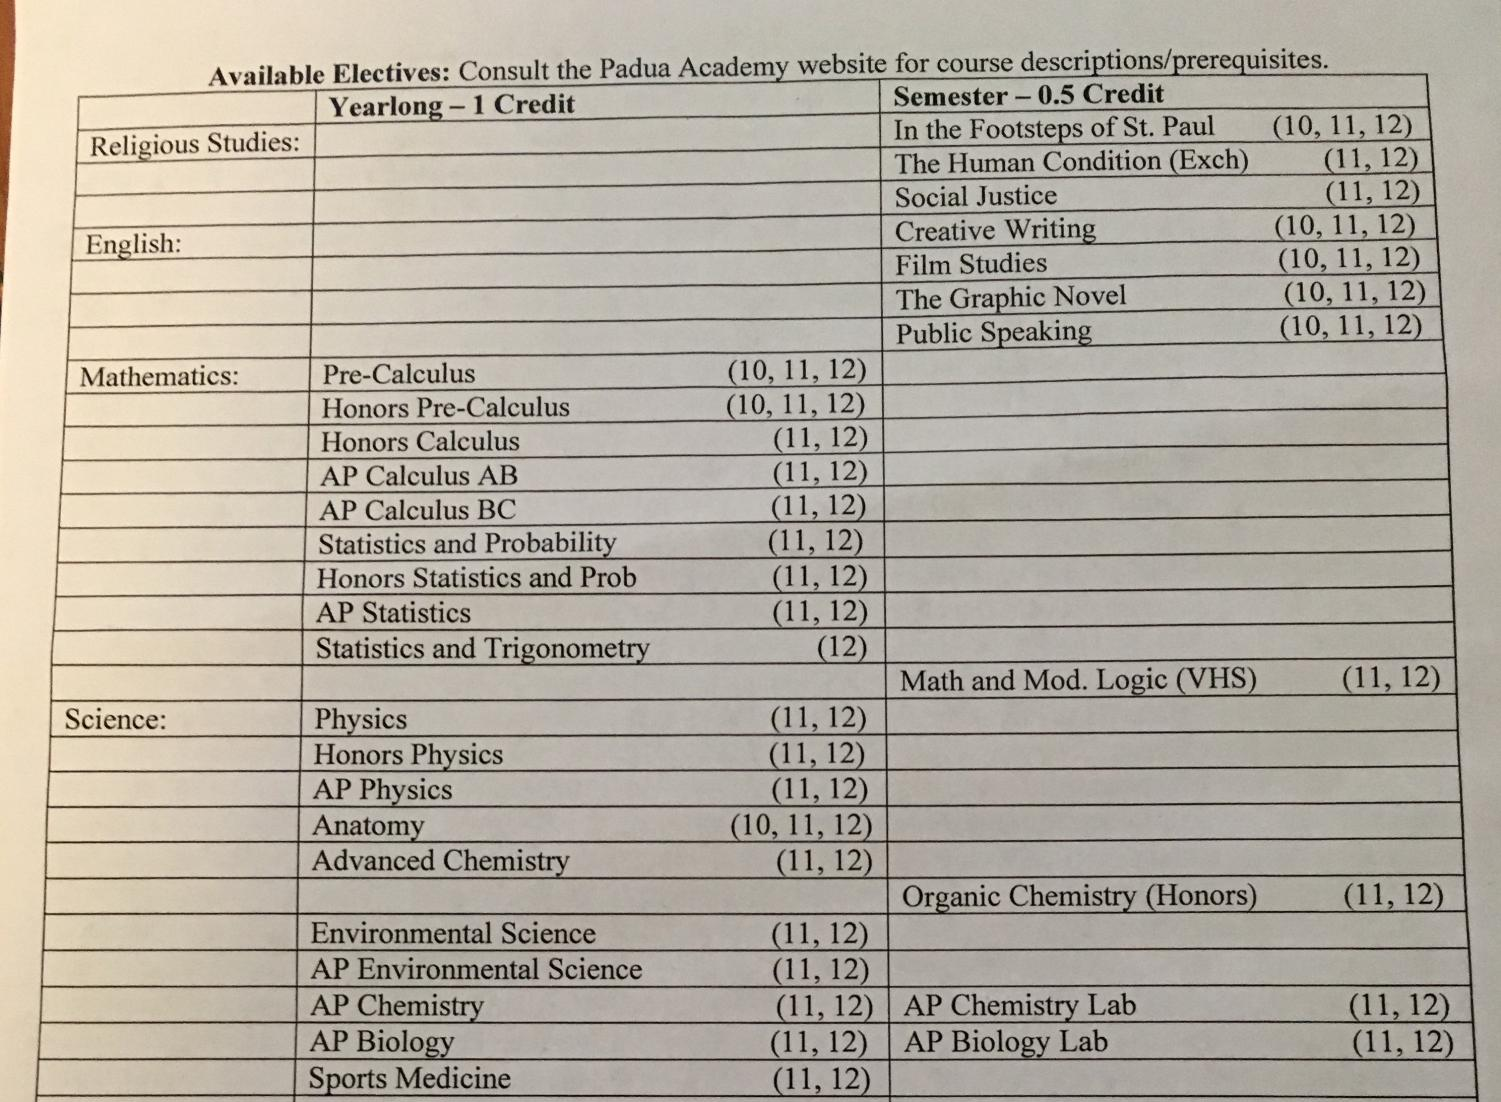 In late January, students received an extensive list of electives that are available to them.